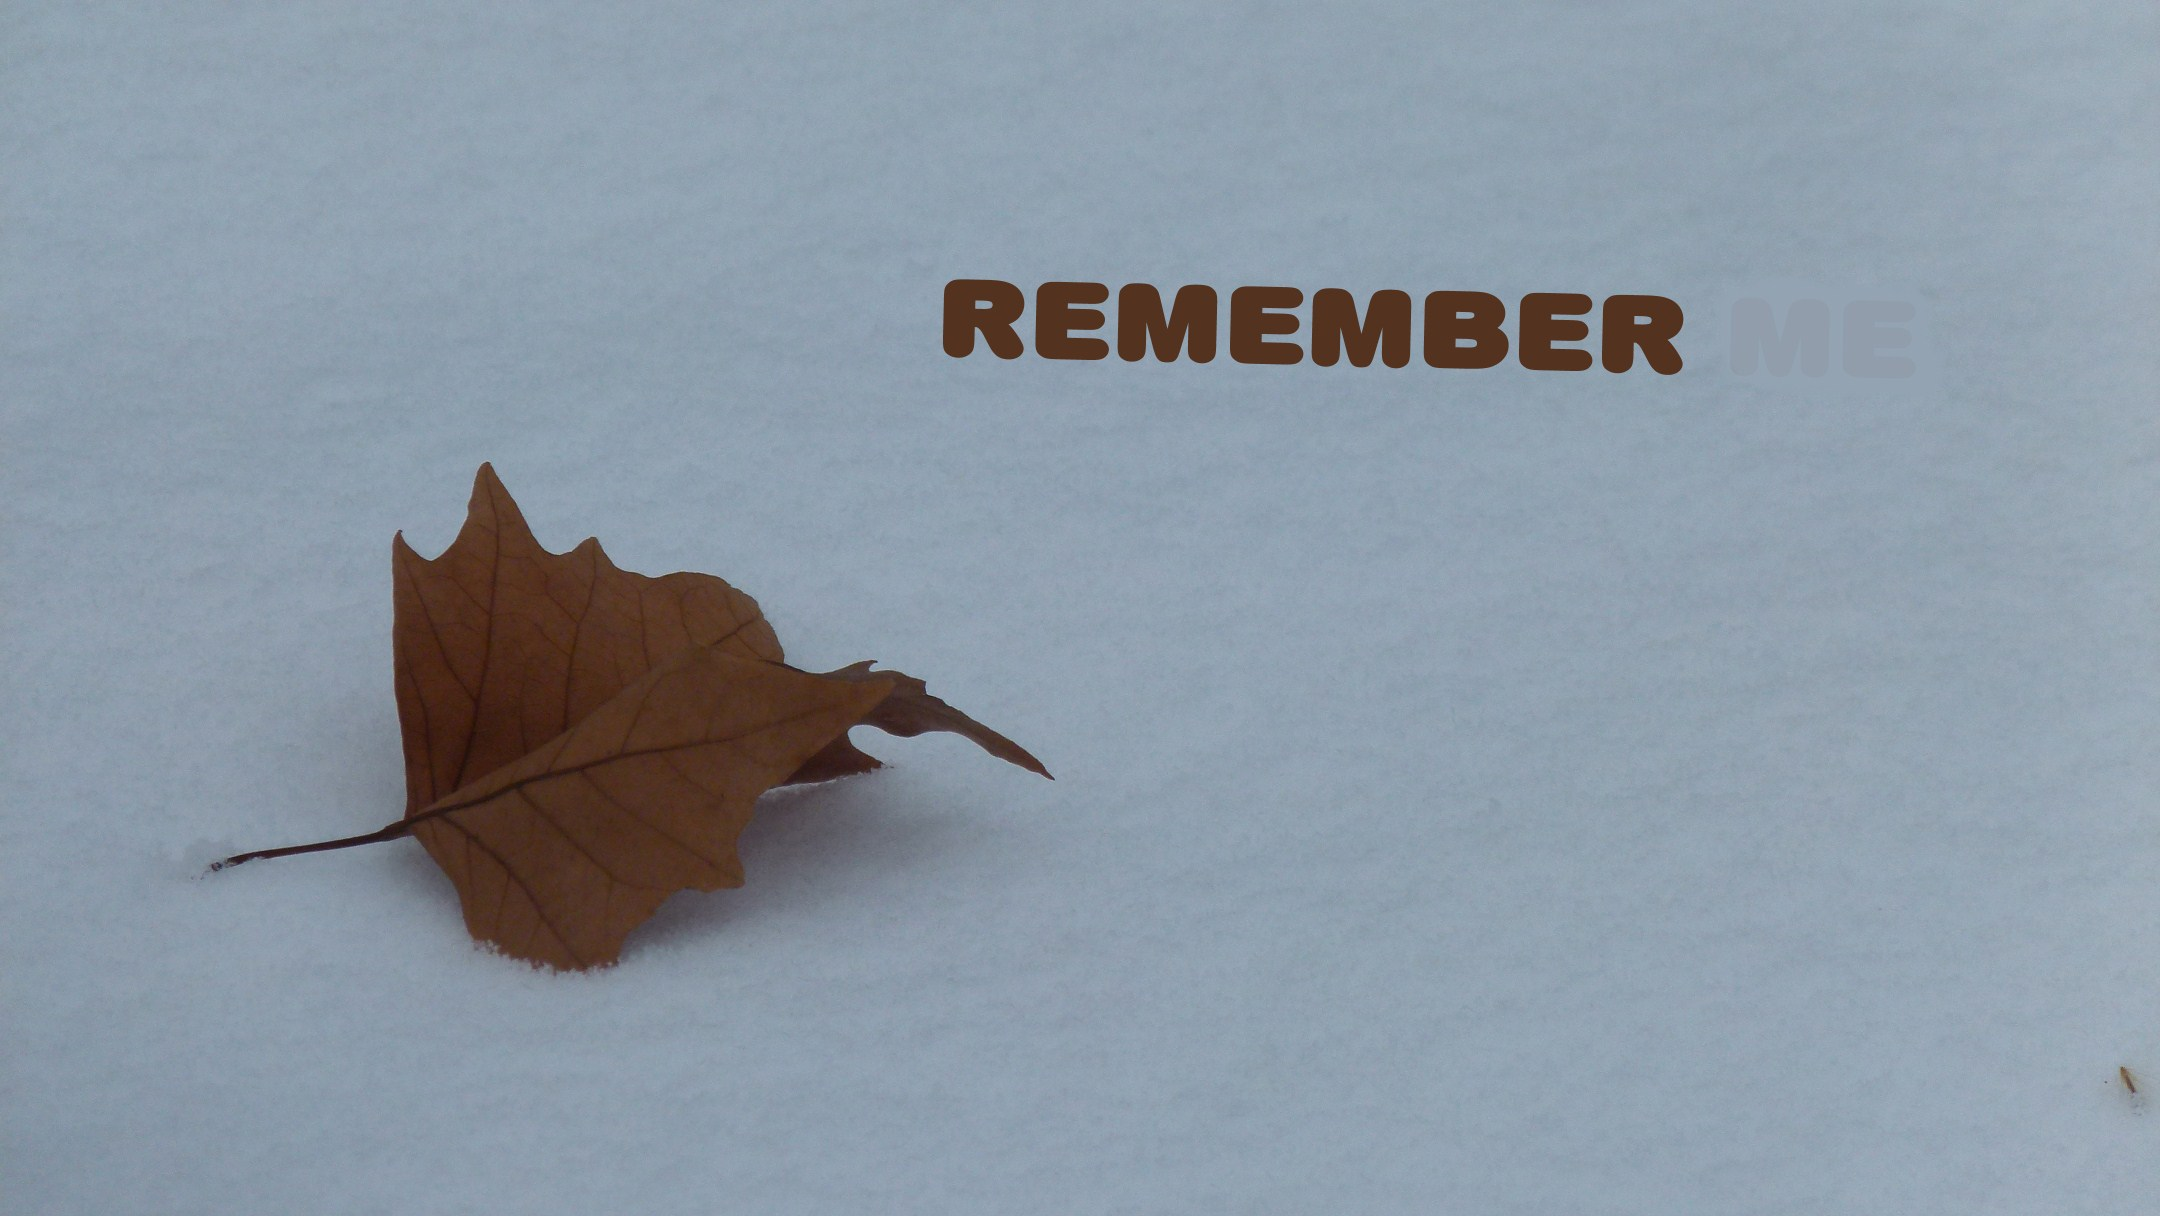 remember (2160 x 1216)